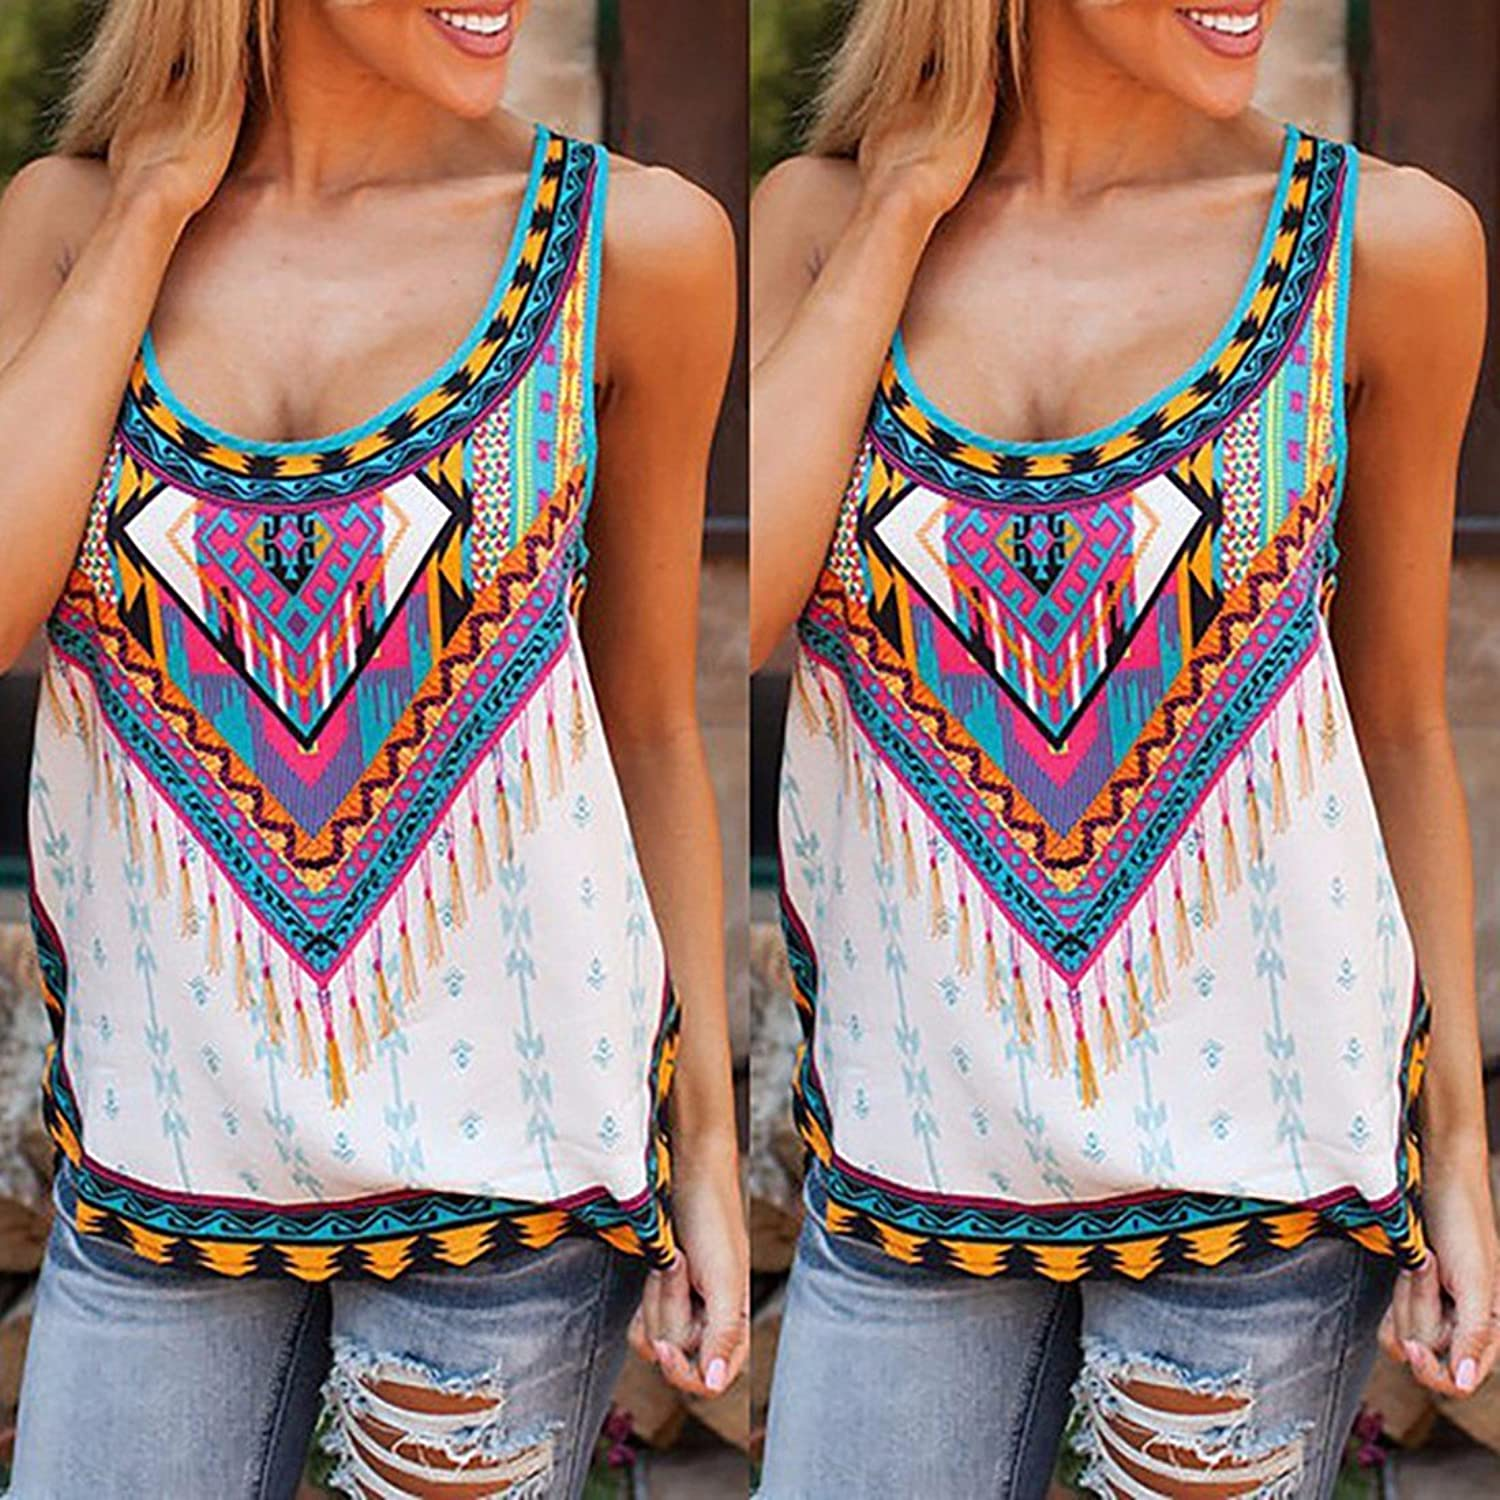 Dewapparel Women New Summer Vest Top Sleeveless Blouse Casual Tank Tops T- Shirt: Amazon.co.uk: Clothing